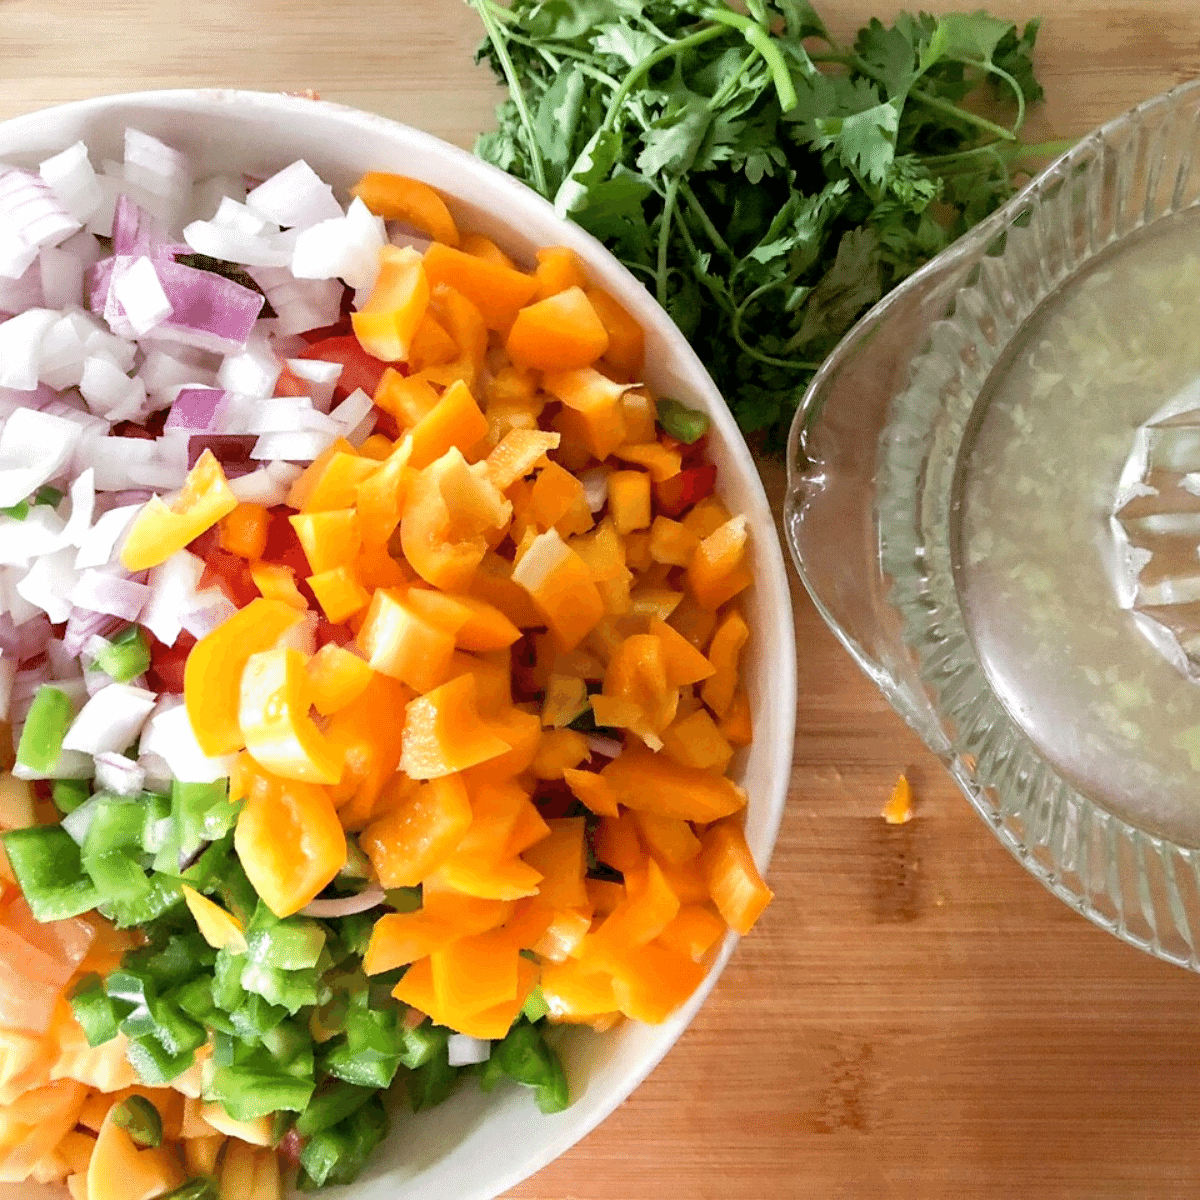 Diced yellow pepper placed in a white bowl with diced red onion, peaches, and jalapeno. A bunch of cilantro beside it with fresh squeezed lime juice.